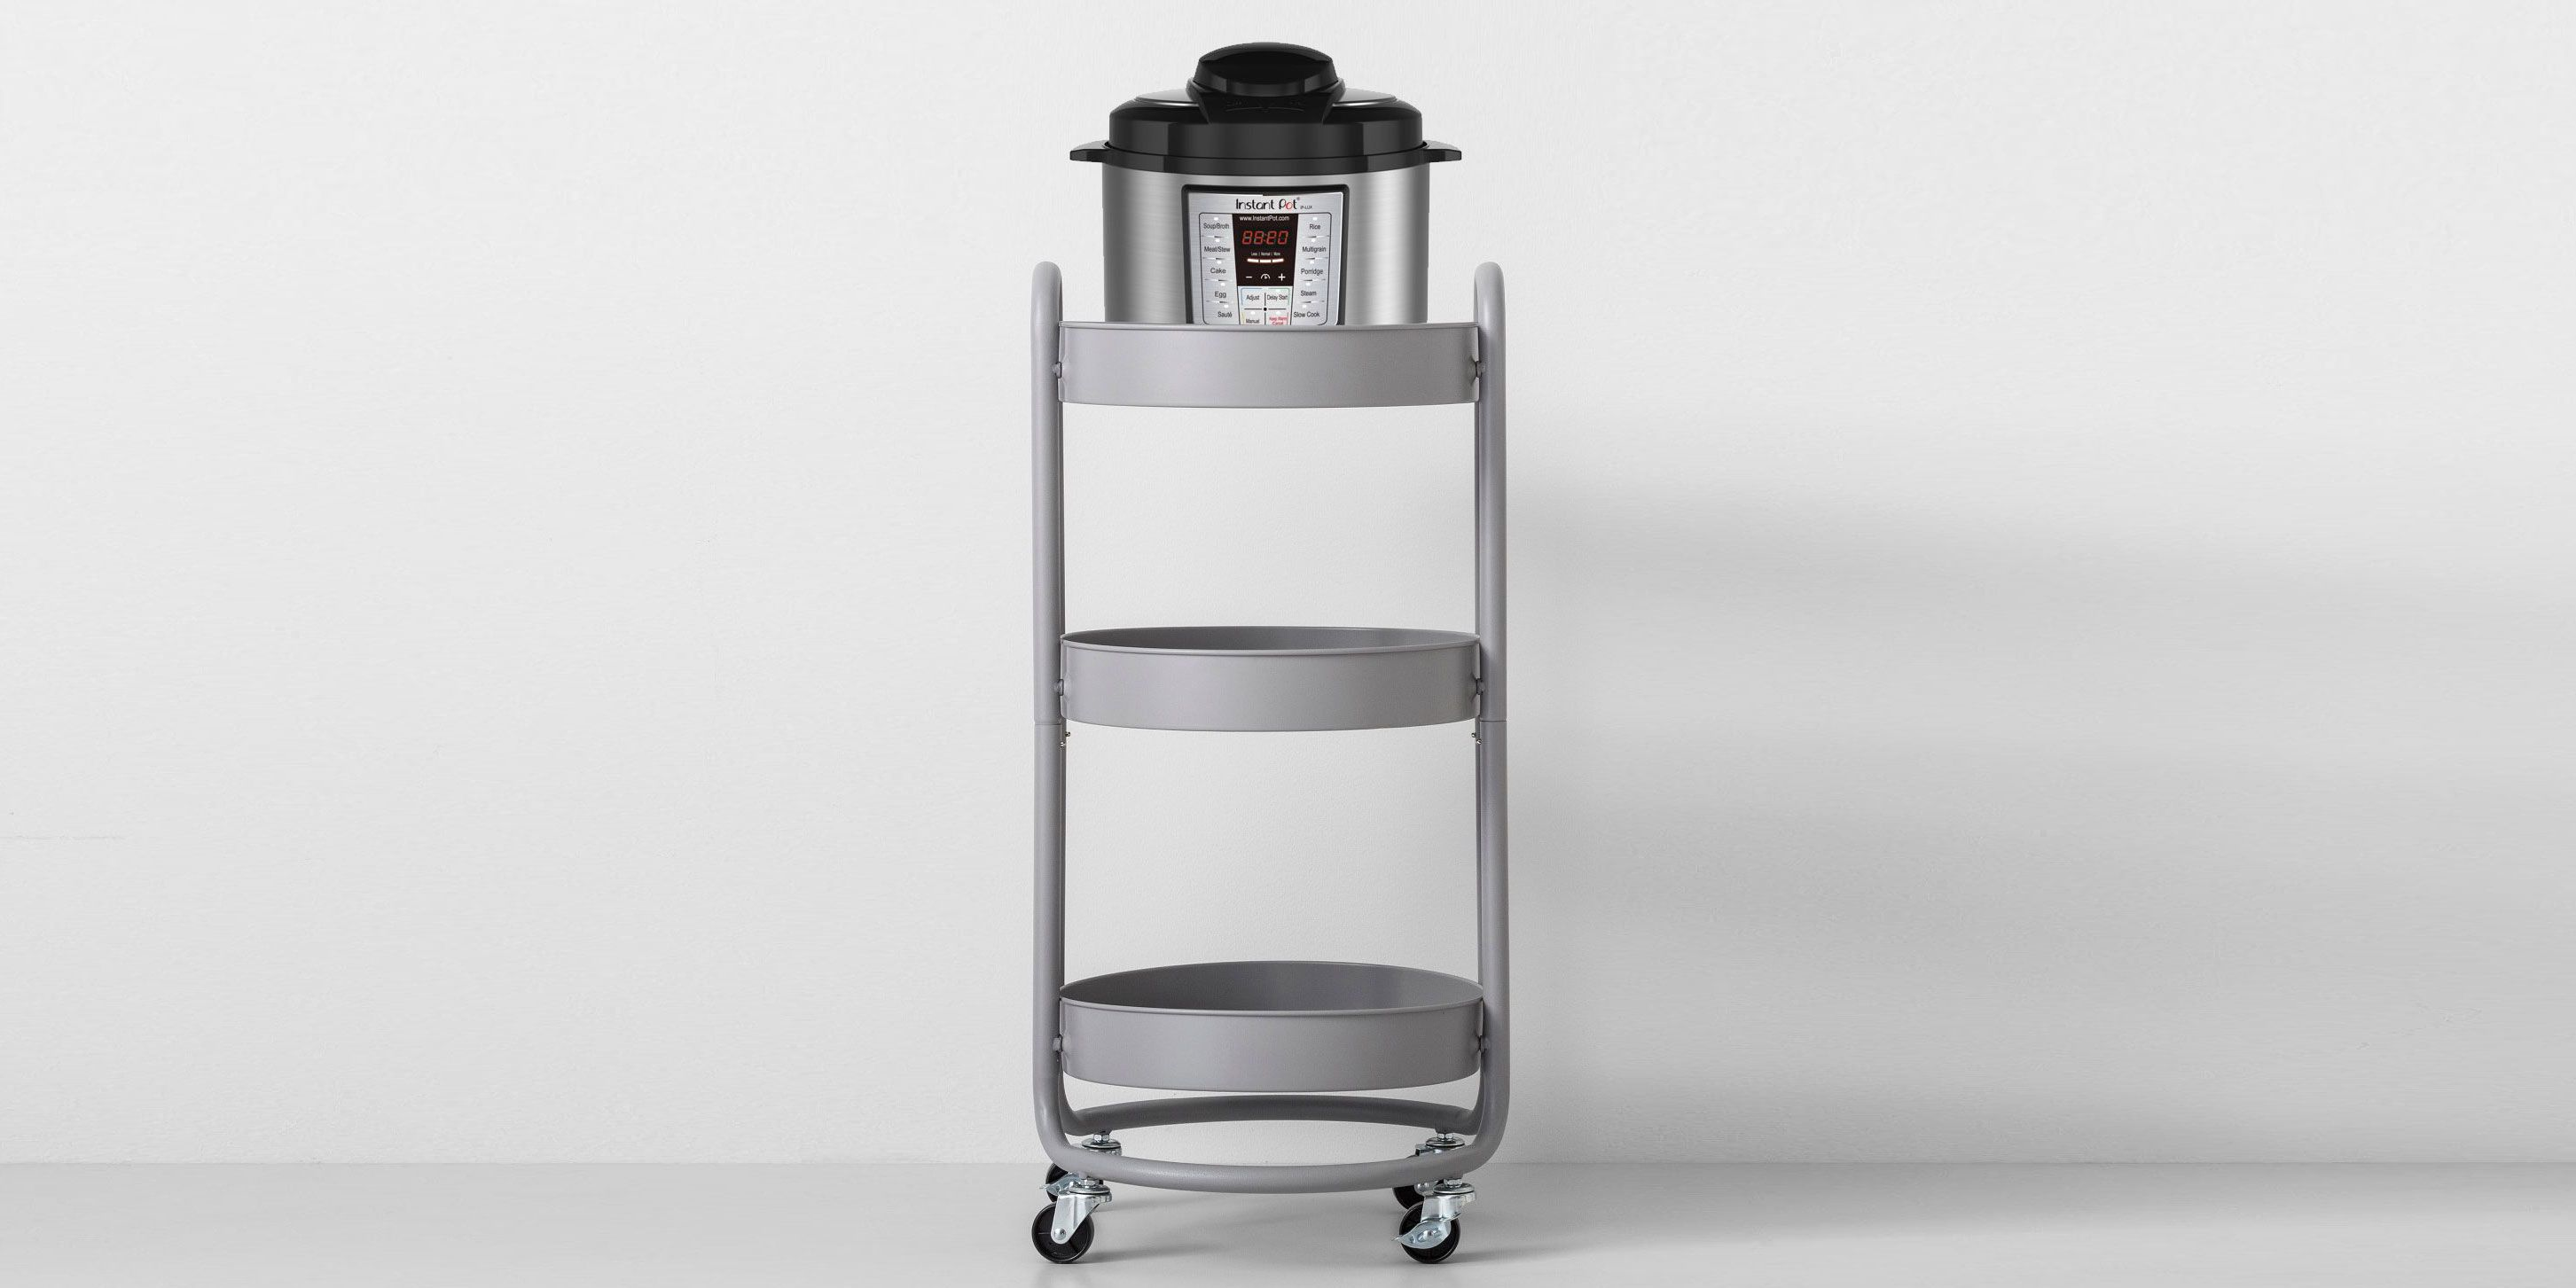 Instant Pot Owners Are Obsessed With This $30 Cart From Target